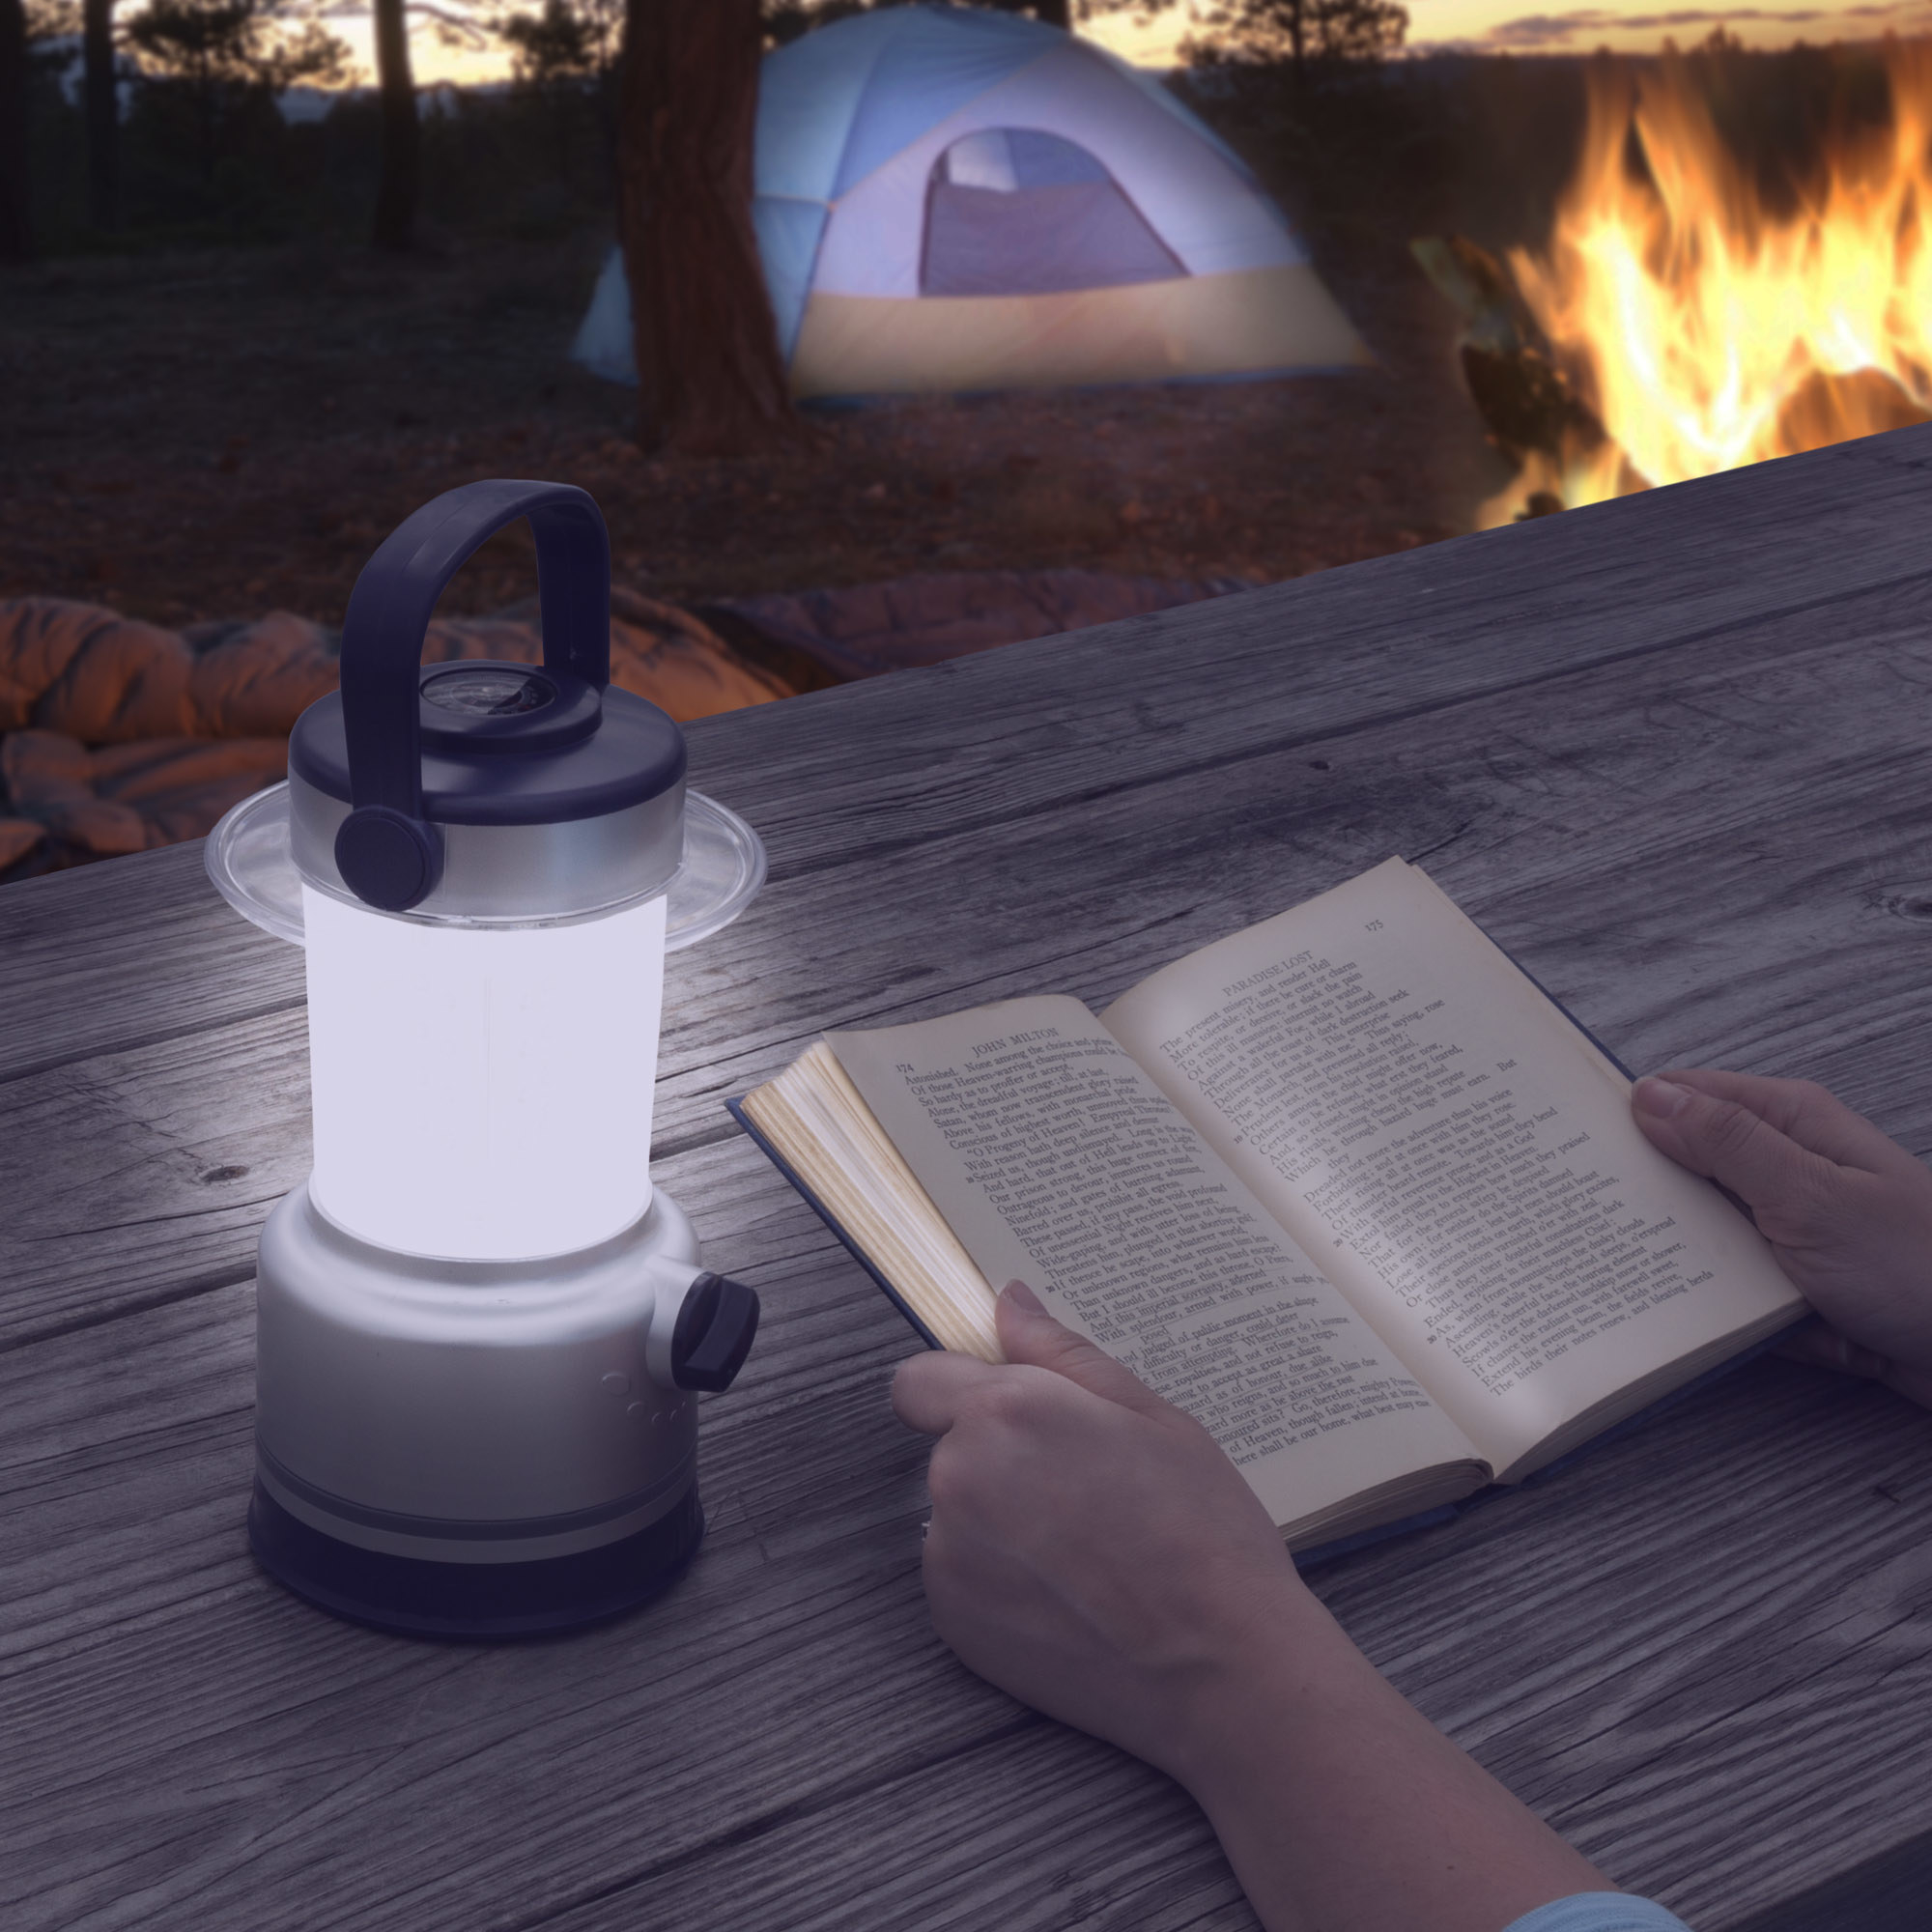 lit-up lantern with someone reading a book in the light it gives off